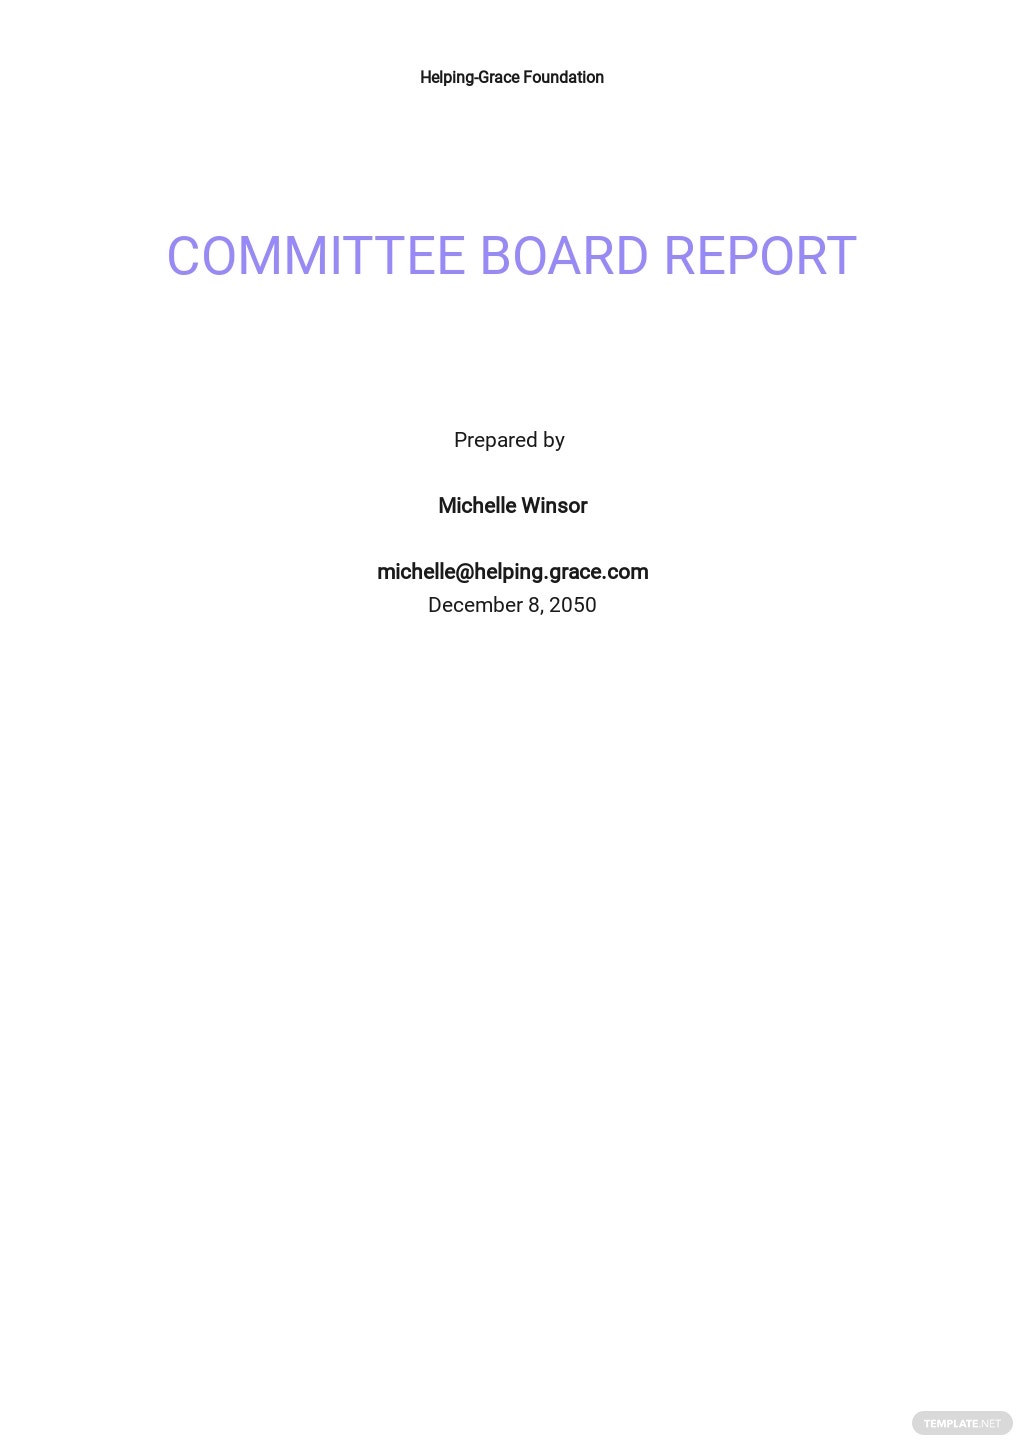 Committee Board Report Template